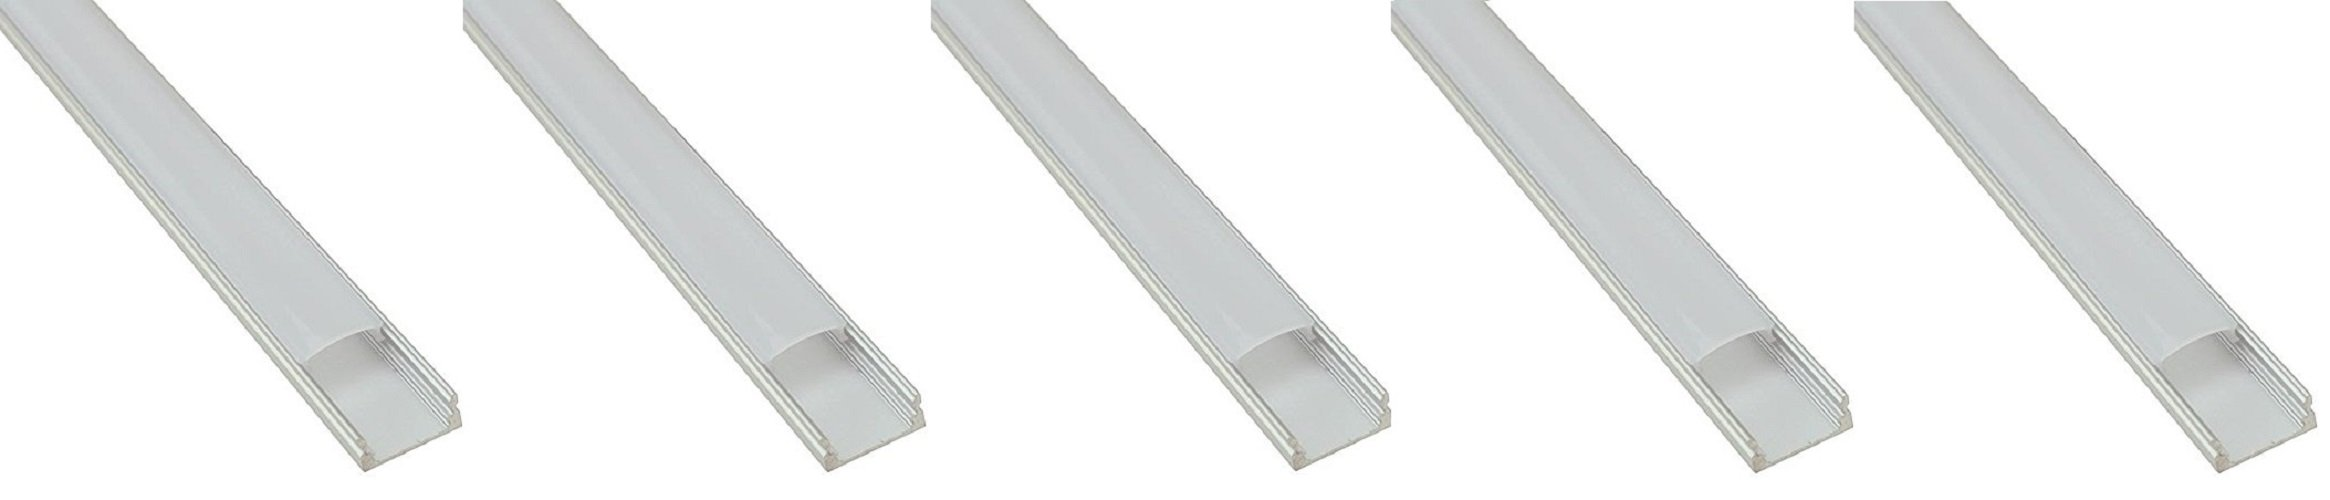 5-Pack Of Aluminum Channel For LED Lights By Ciata Lighting | U-Shape Extrusions For LED Strips With Frosted Cover& CompactDesign | With End Caps &Mounting ClipsIncluded For Easy Installations